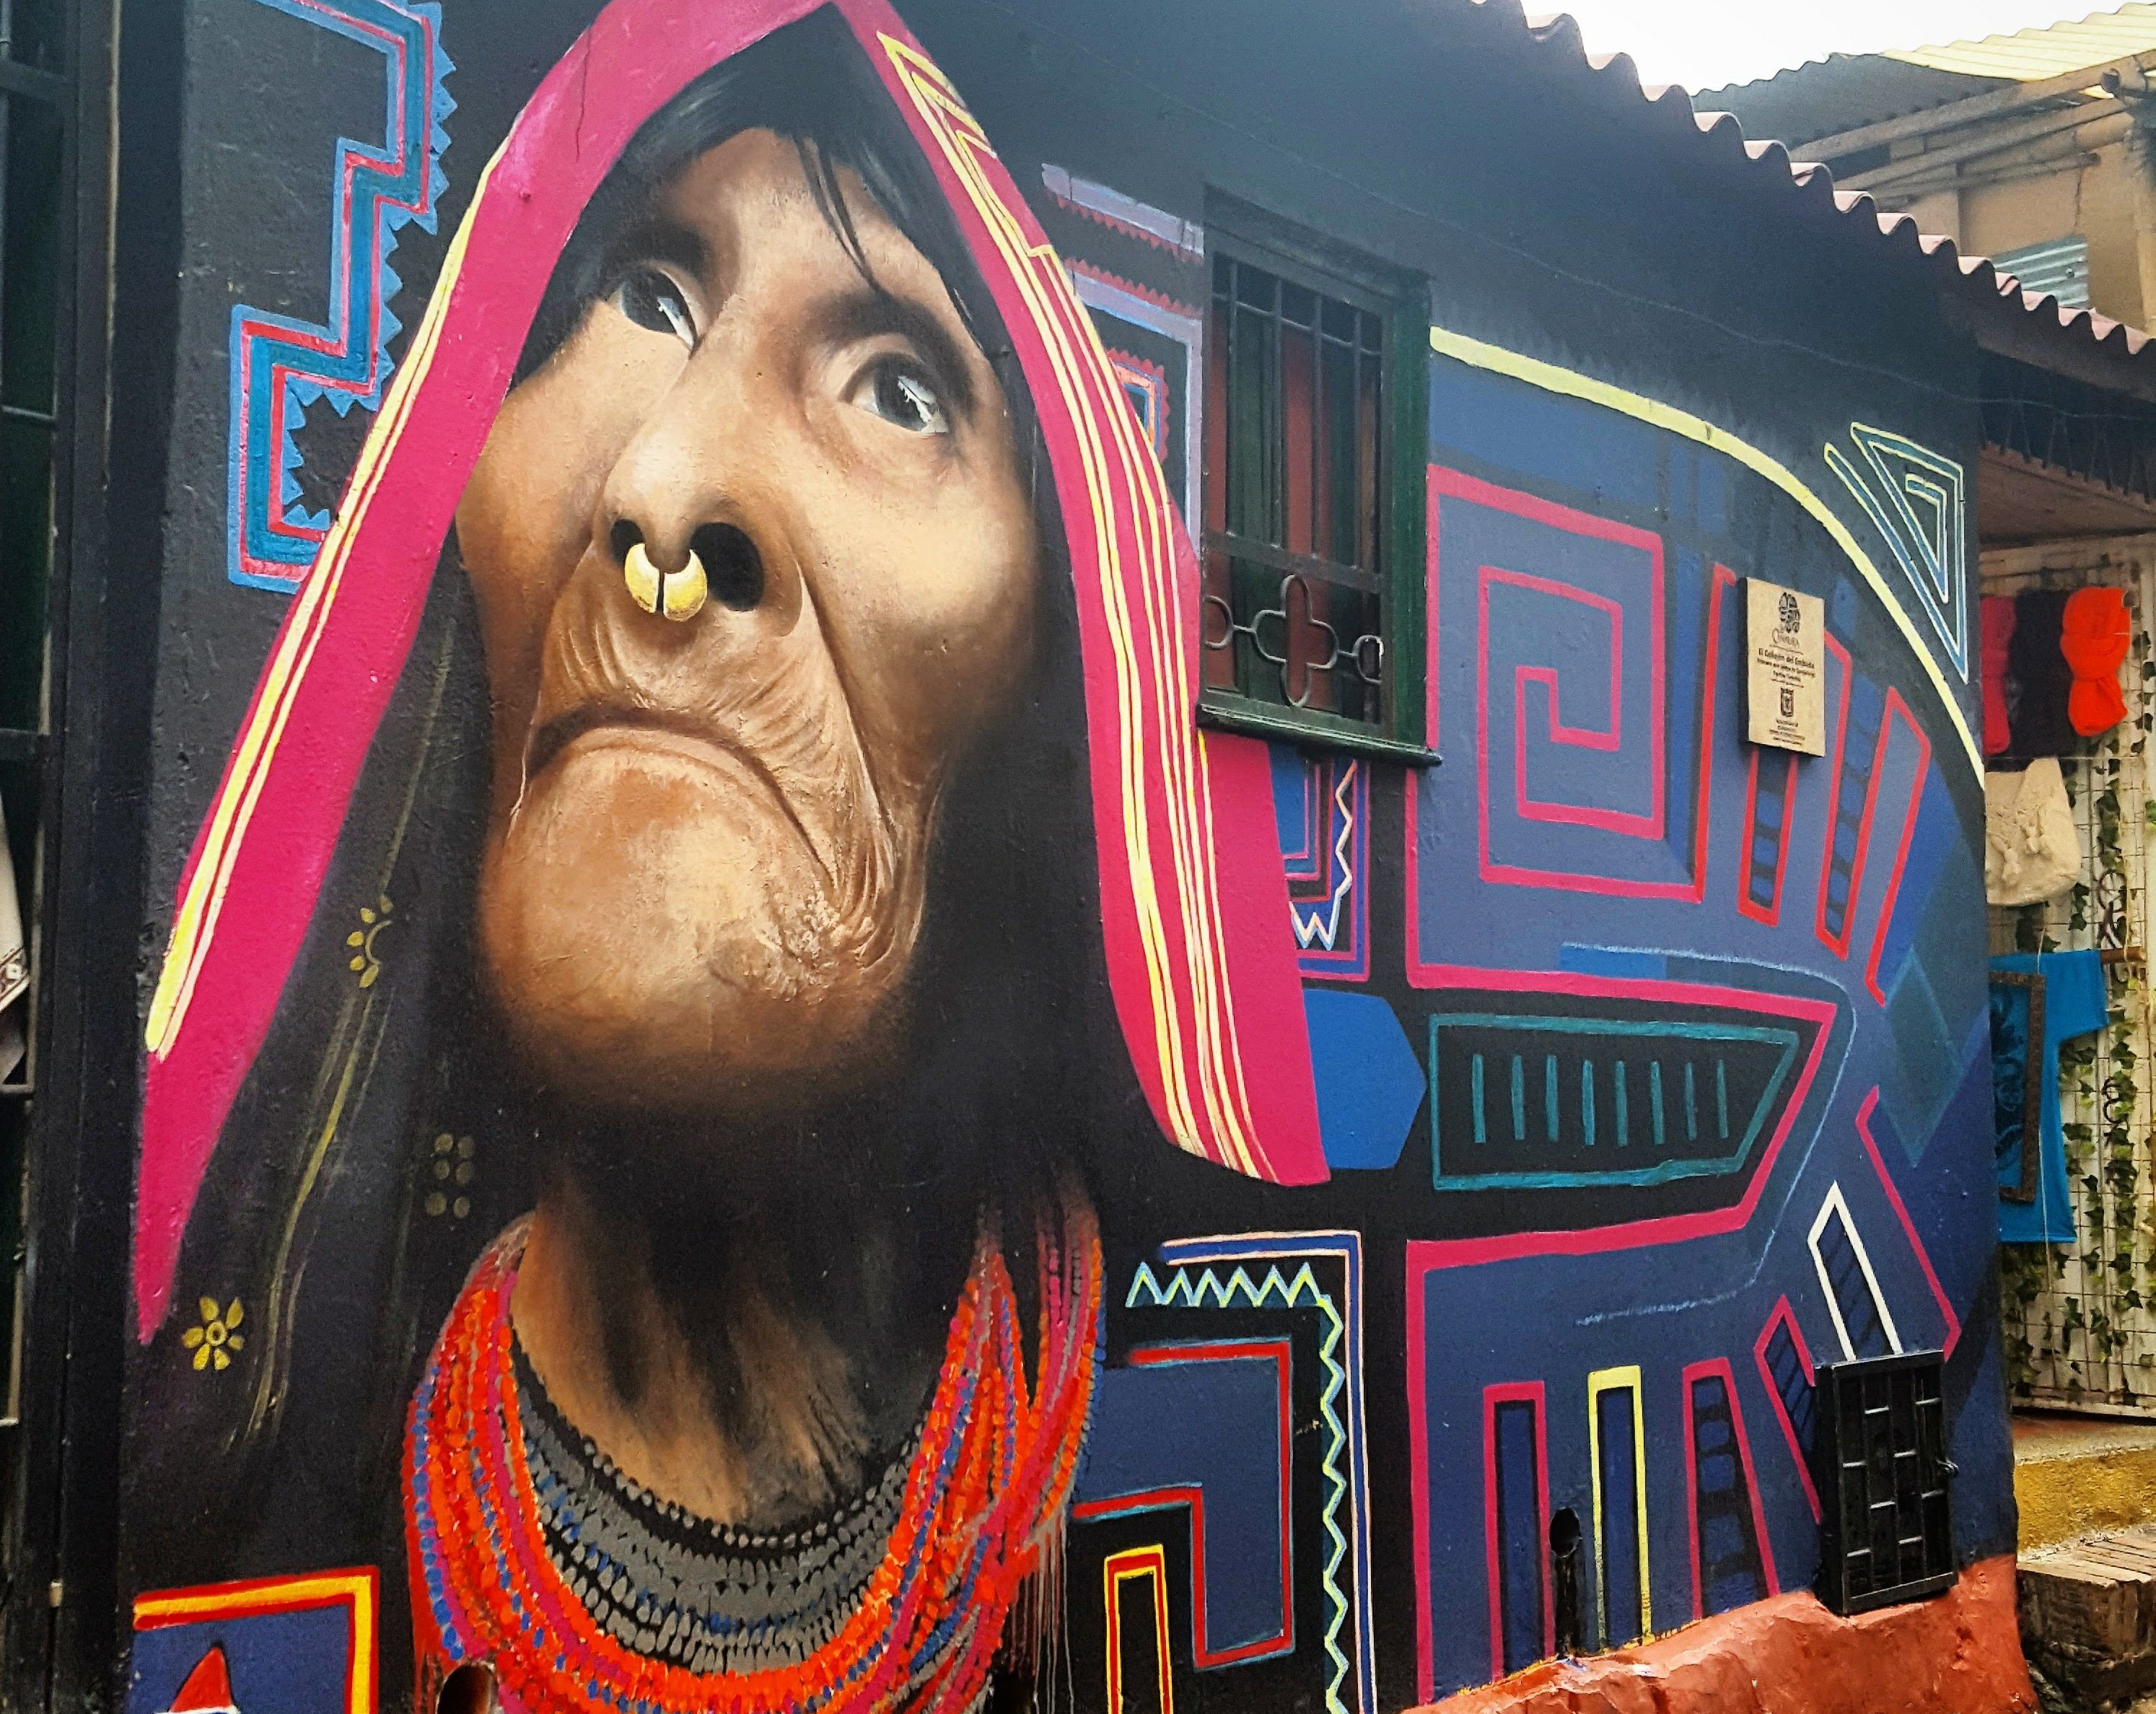 An impressive Mural of an indigenous Kuna Woman in Colombia's Capital. Check out Bogota's moving STreet Art History!